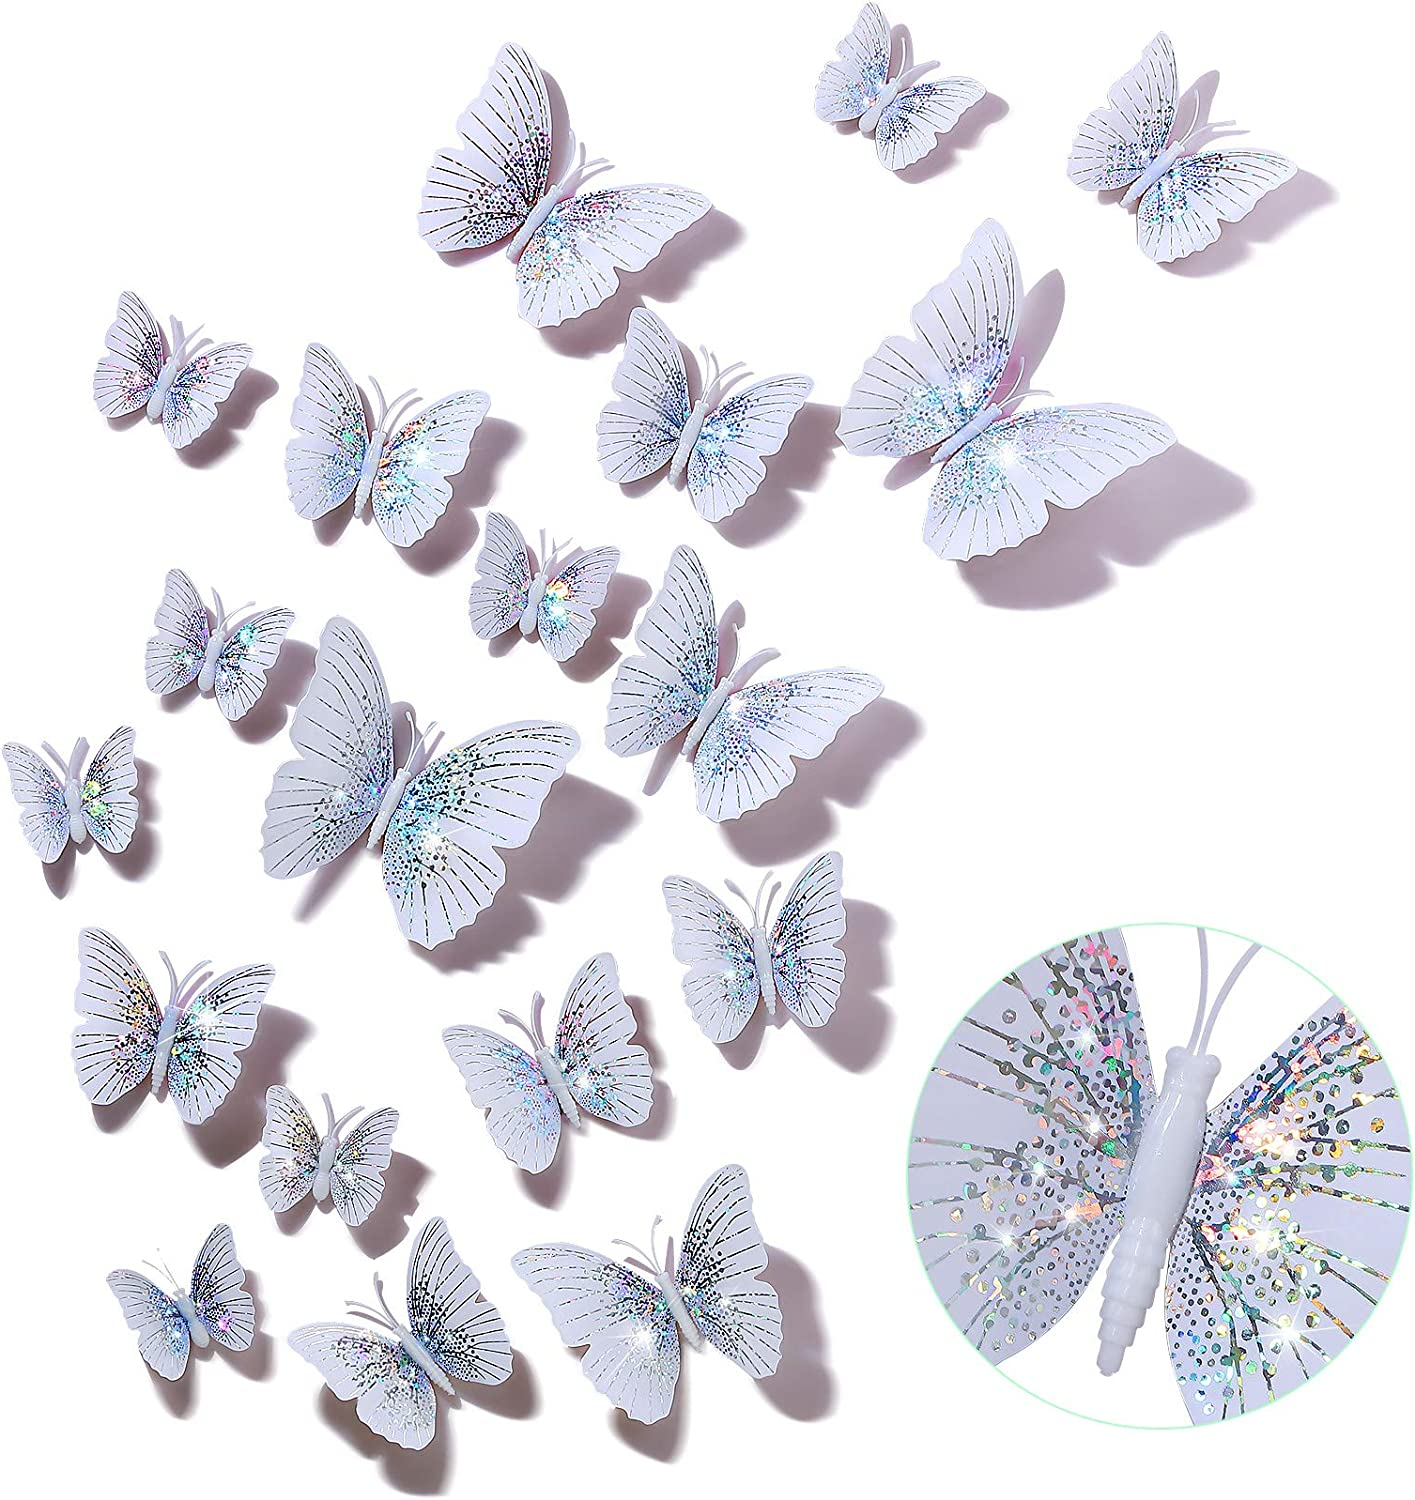 48 Pieces Glitter 3D Butterfly Wall Stickers Removable Butterfly Wall Decals Butterfly Decorative Stickers Bling Lively Butterfly Wall Mural for DIY Party Office Home Room Decoration, White